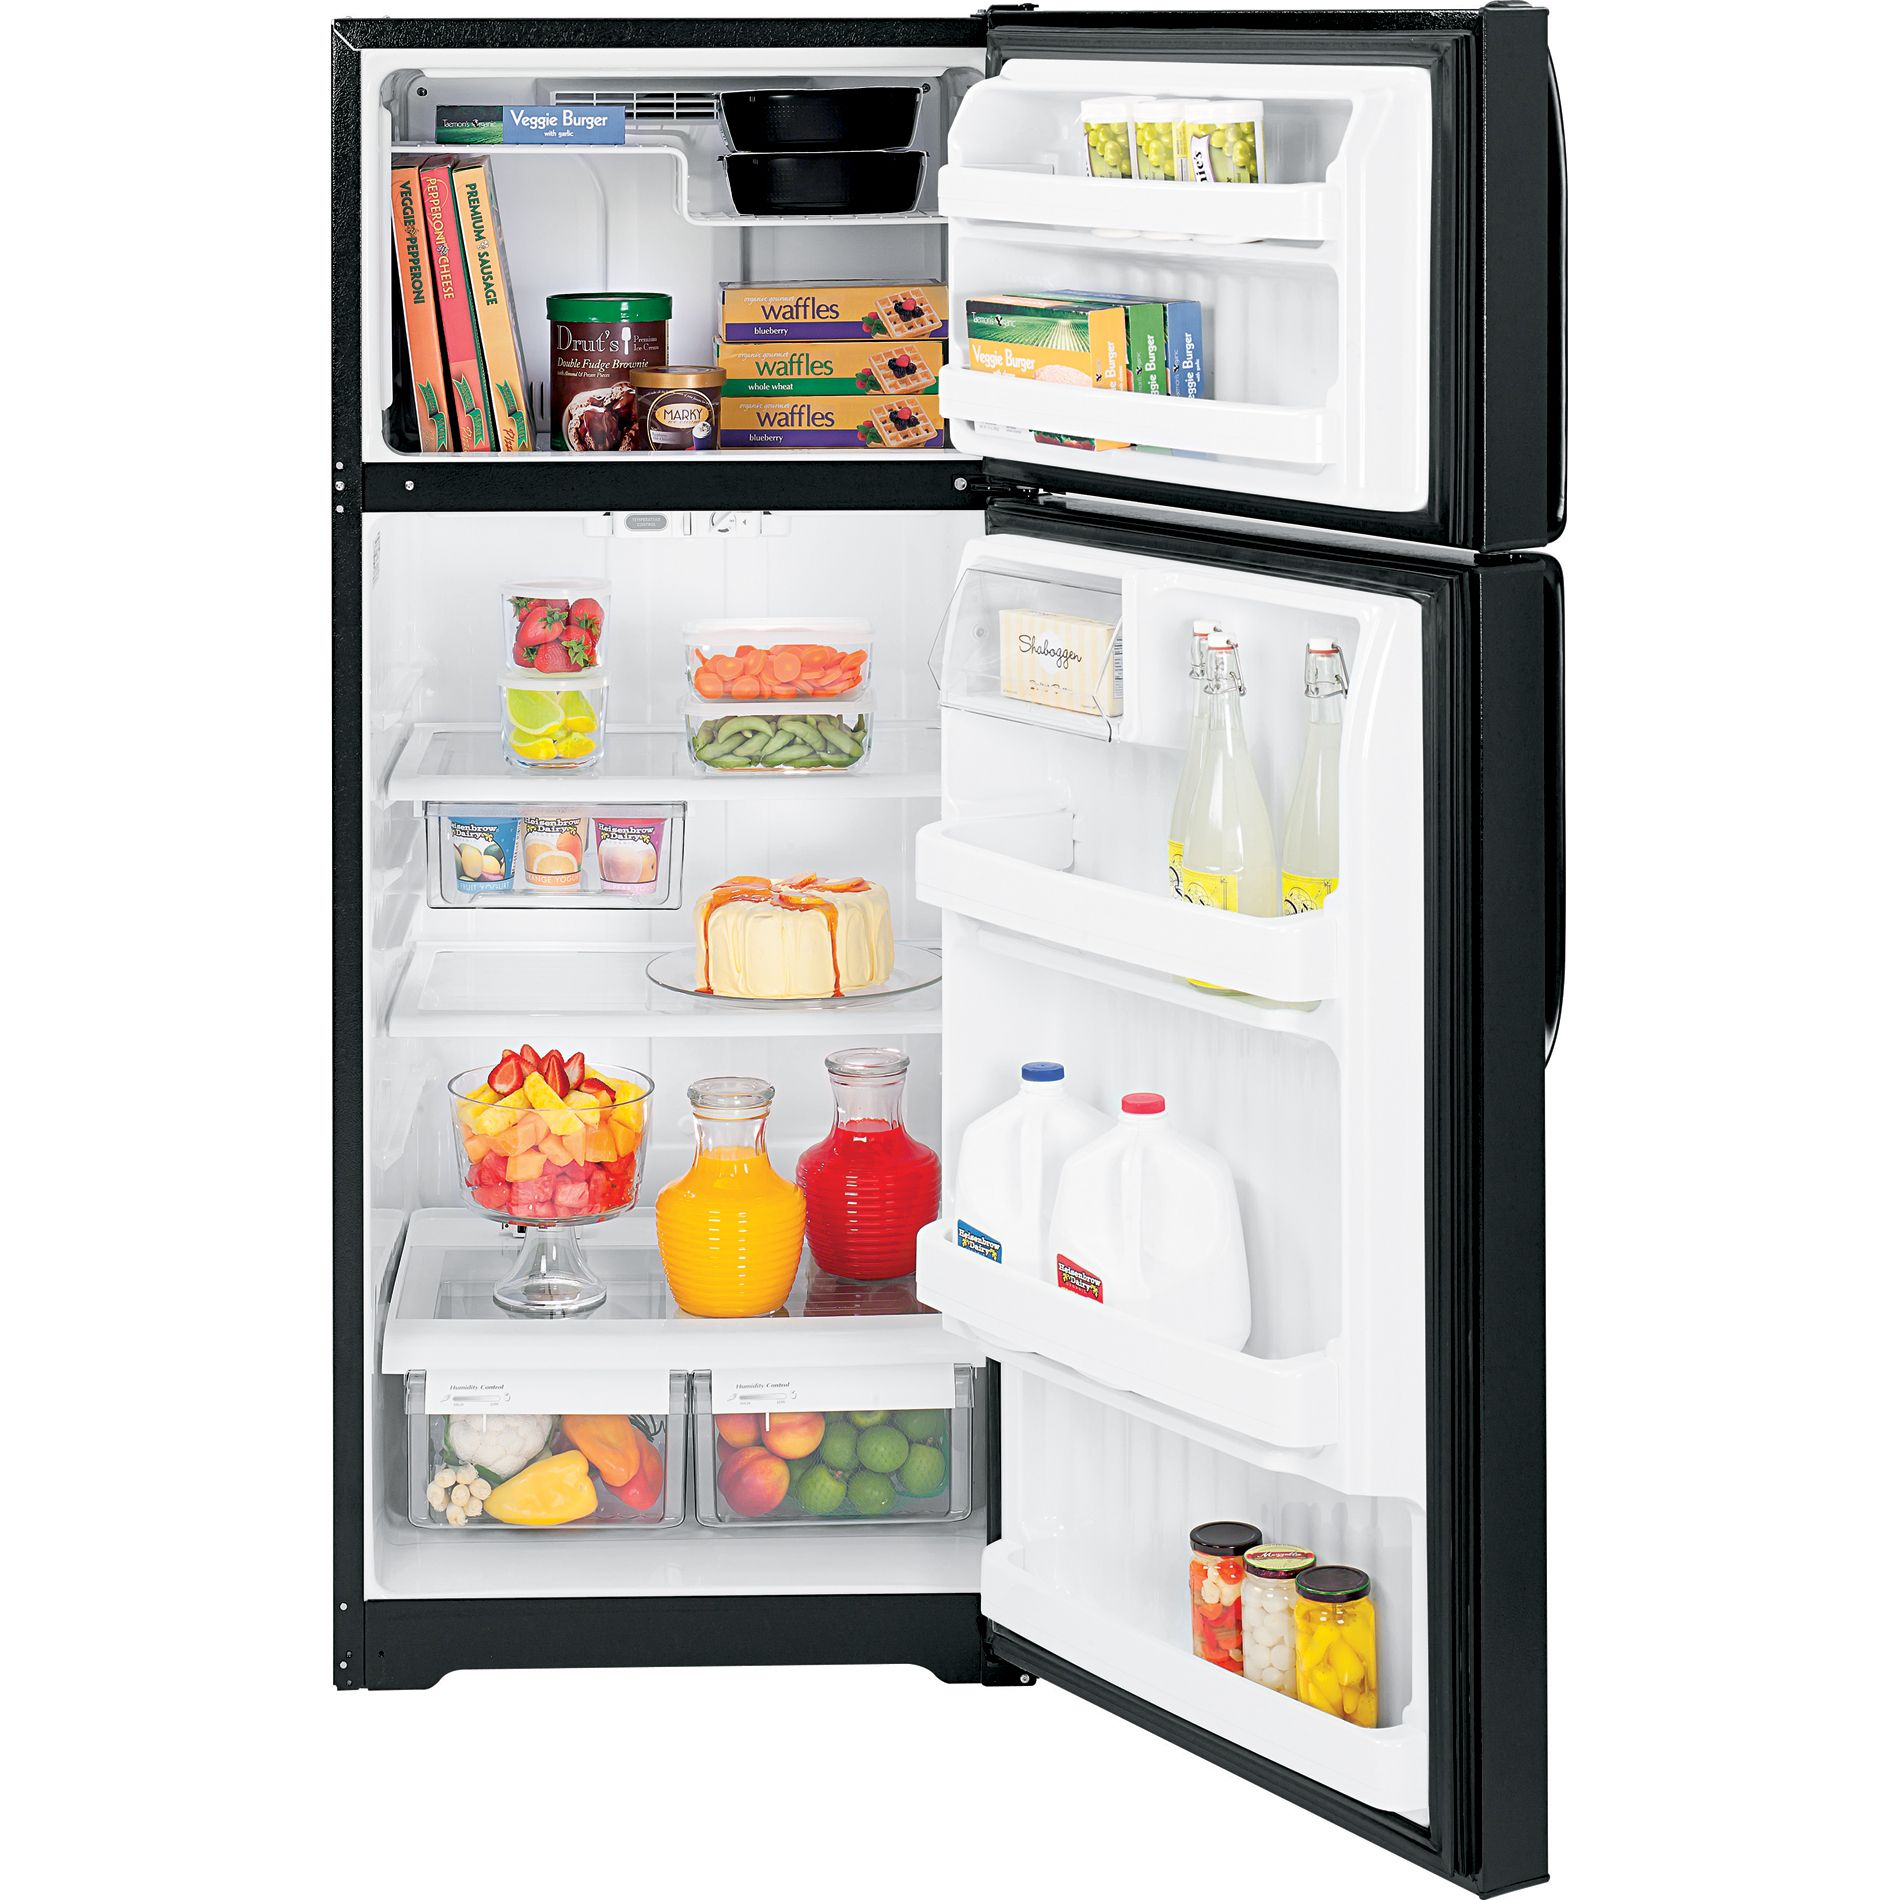 GE 18.1 cu. ft. Top Freezer Refrigerator - Black